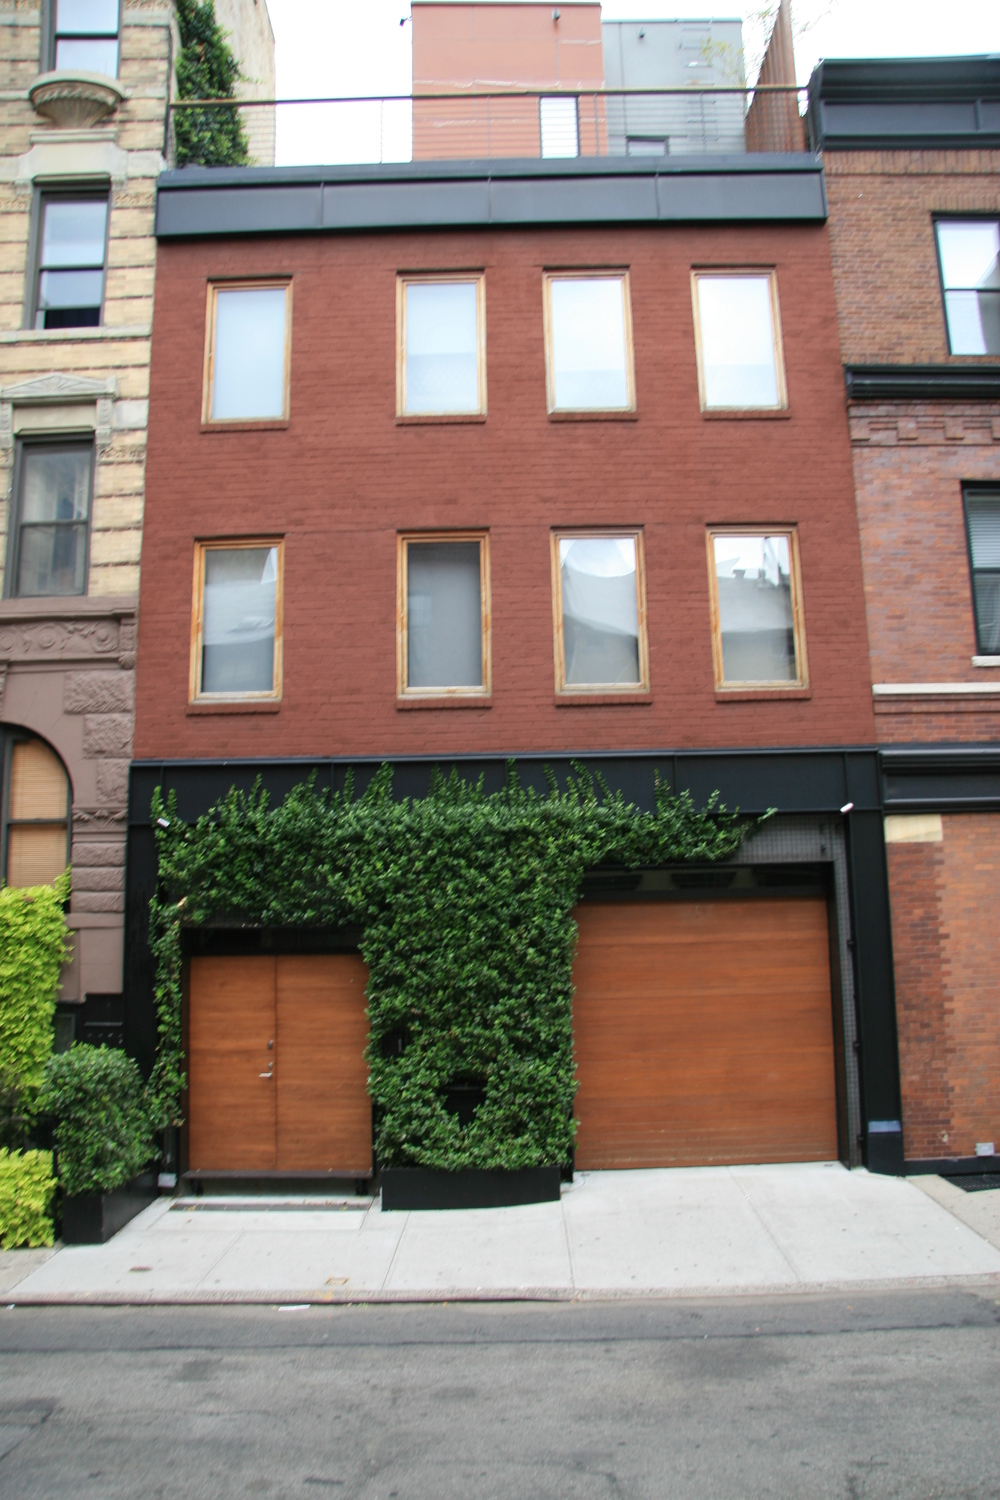 BA_West Village Townhouse_Photo 1.JPG